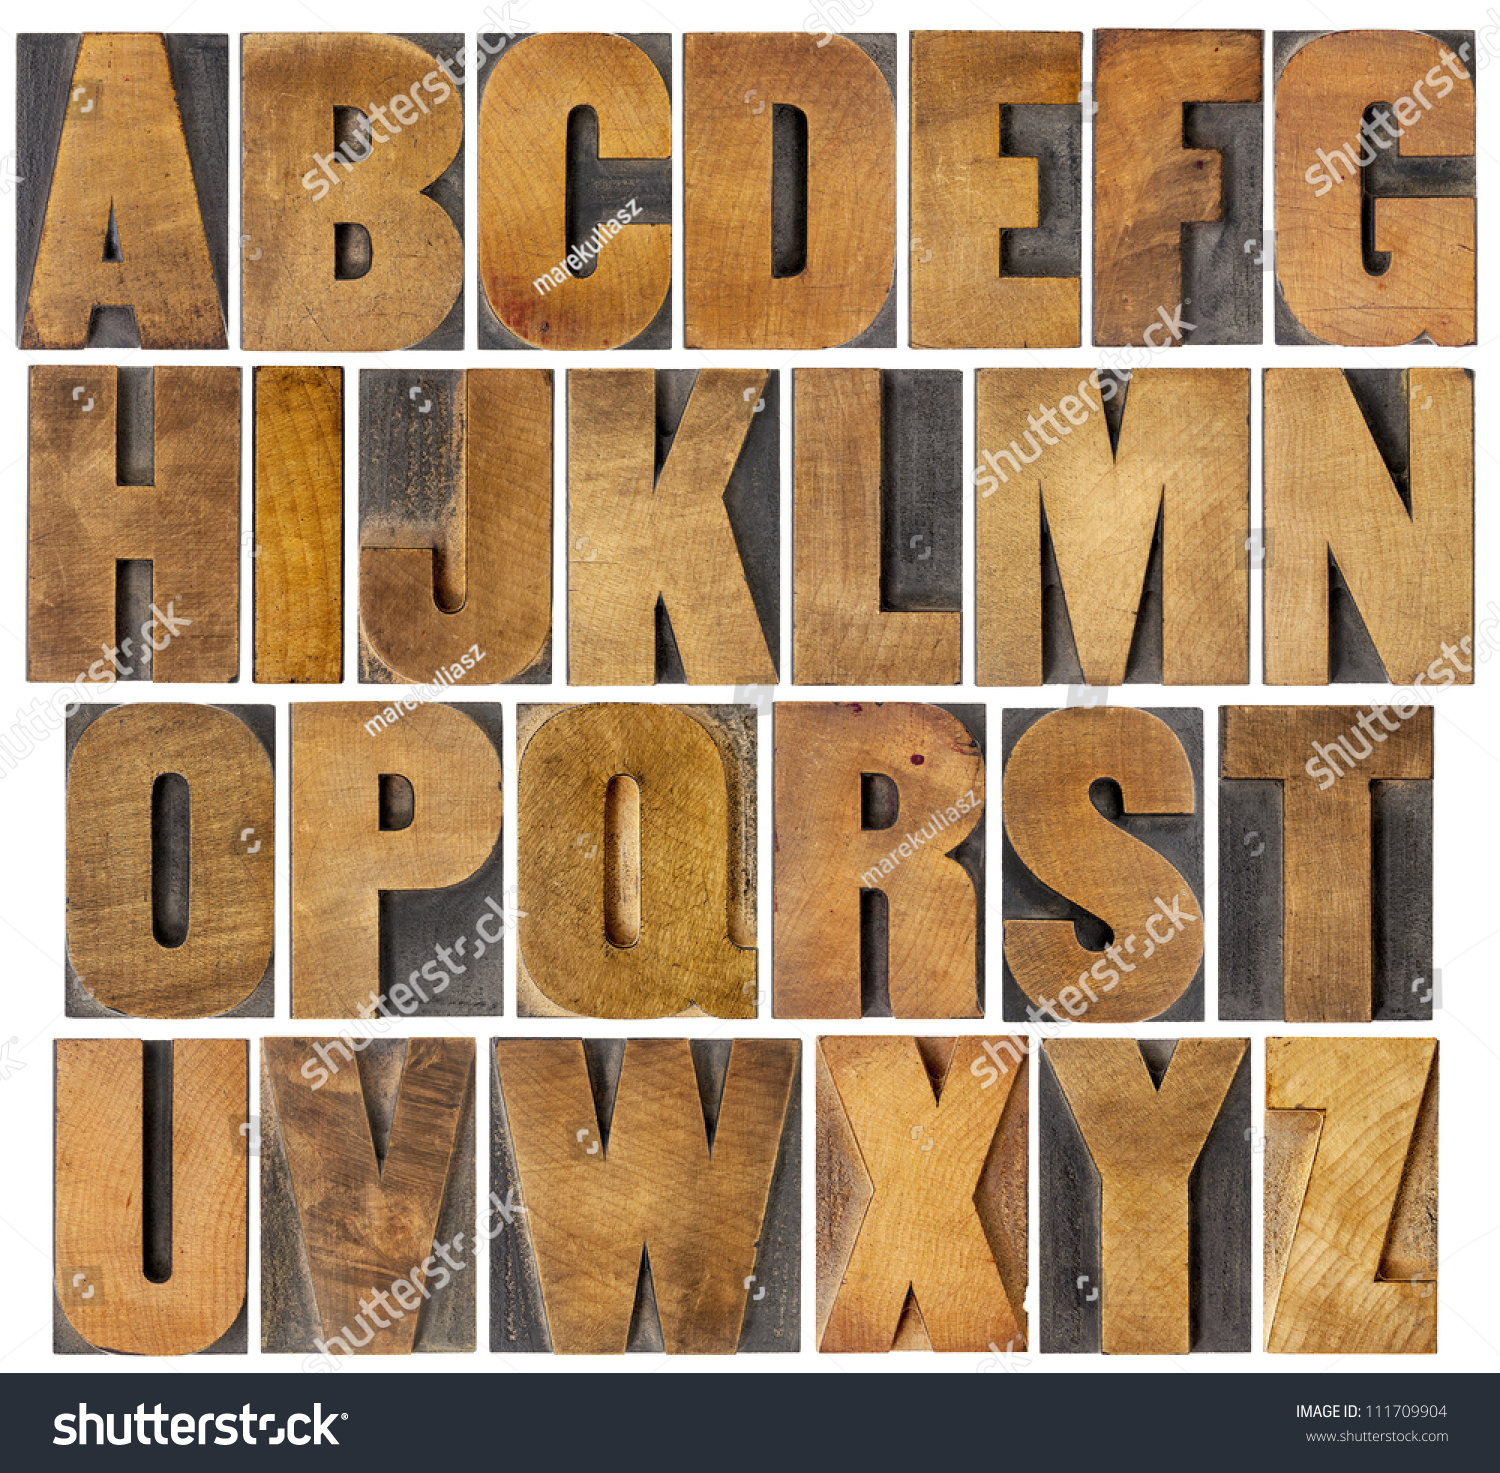 plete English Alphabet Collage 26 Isolated Stock Royalty